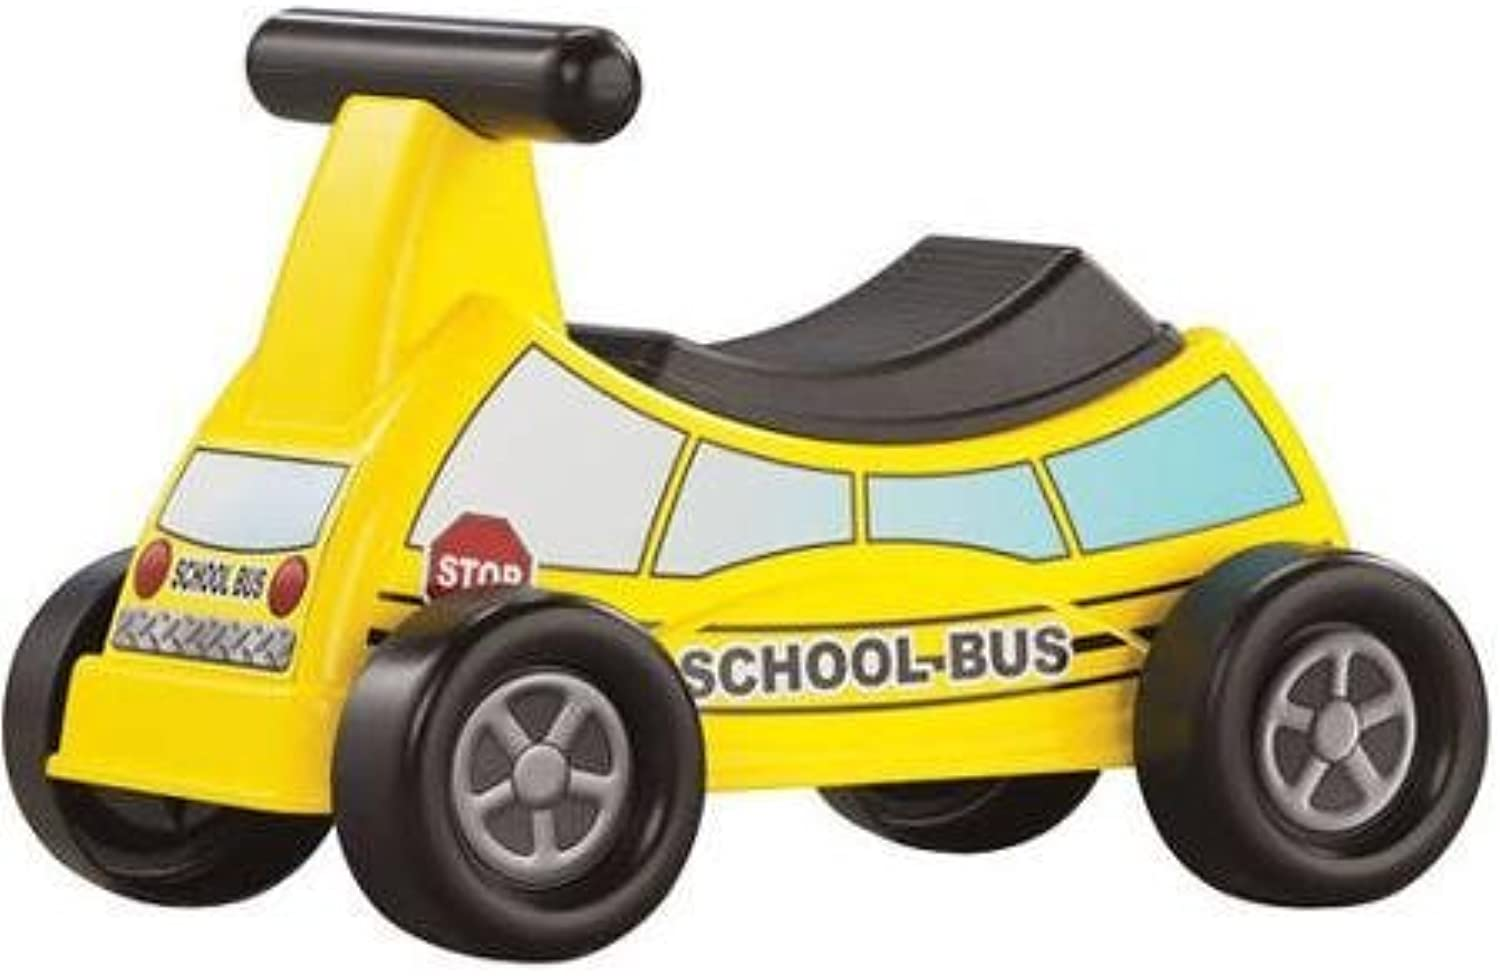 Compra calidad 100% autentica American Plastic Juguetes School Bus Ride-On Perfect Perfect Perfect Choice for your Adventurous Tot by American Plastic  descuento